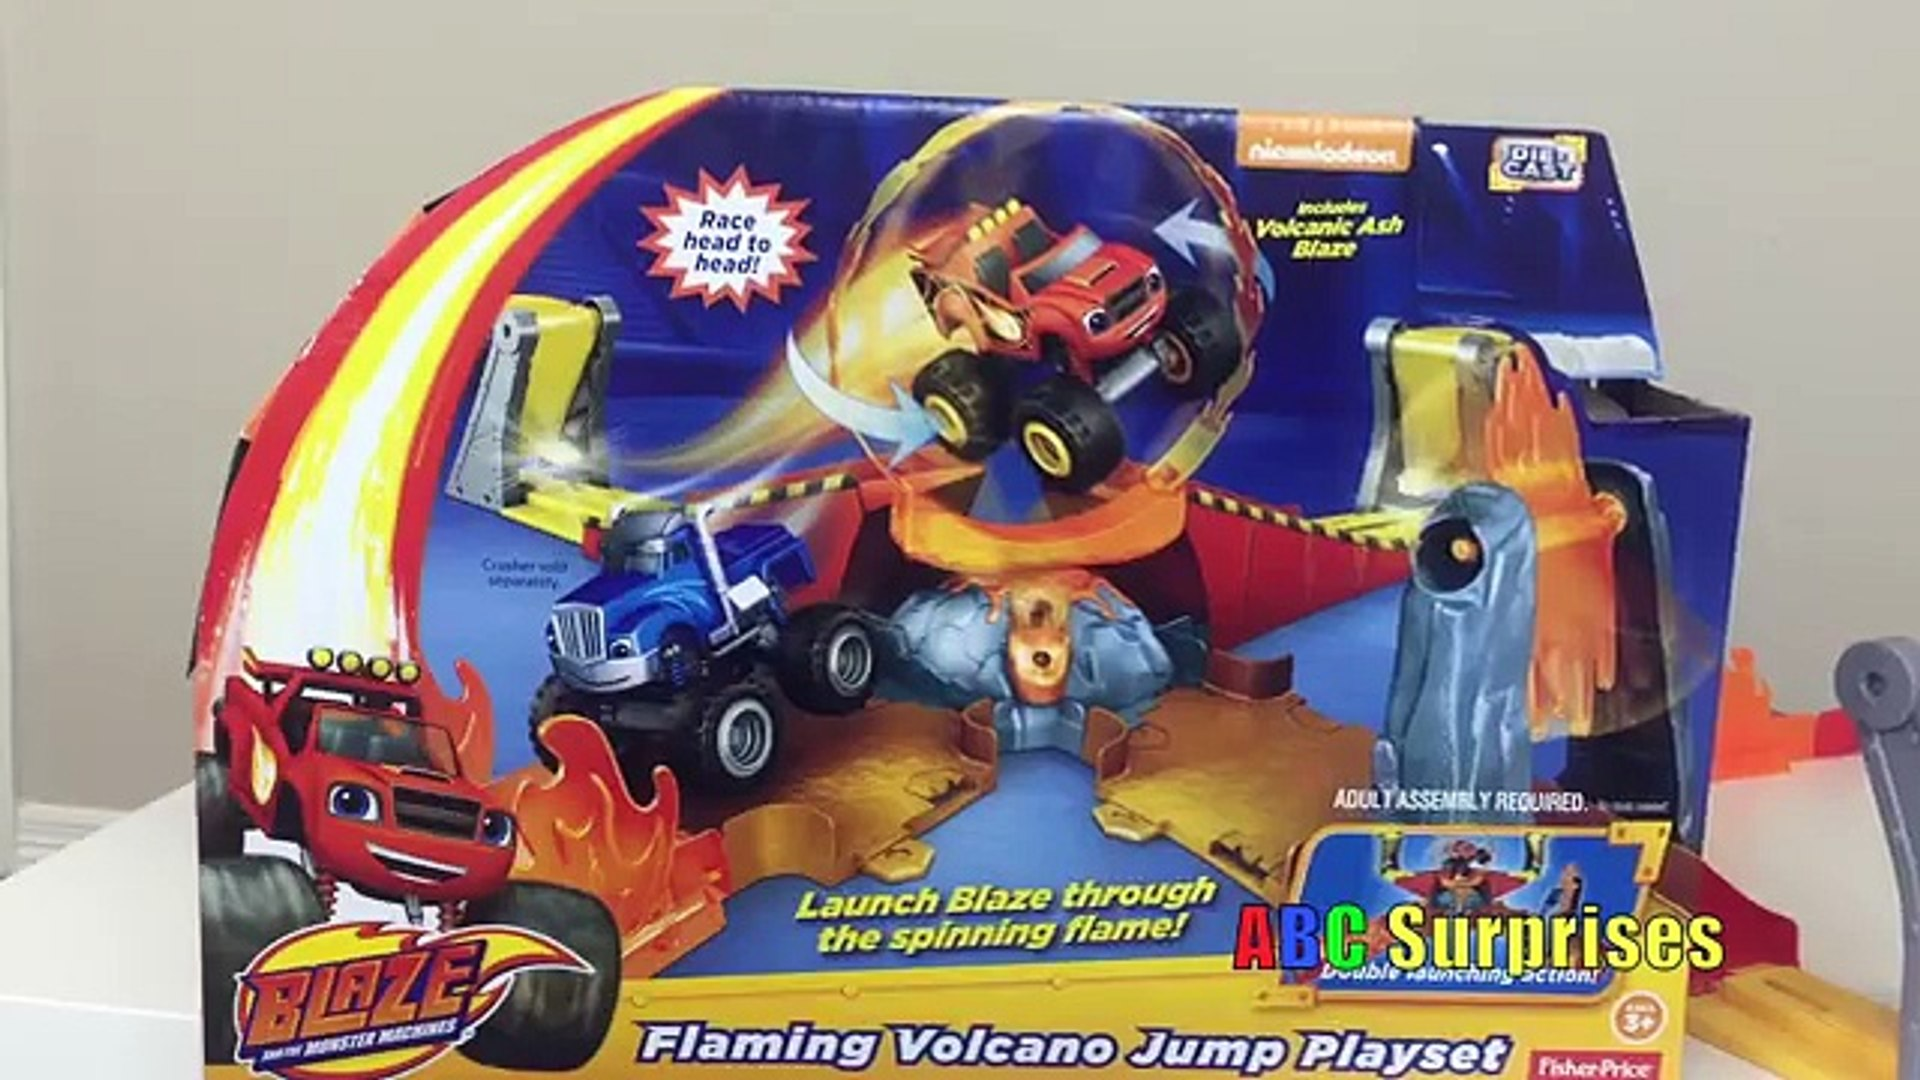 SURPRISE TOYS MAGIC Blaze and the Monster Machines Swoops Brings Surprise Eggs & Disney Ca